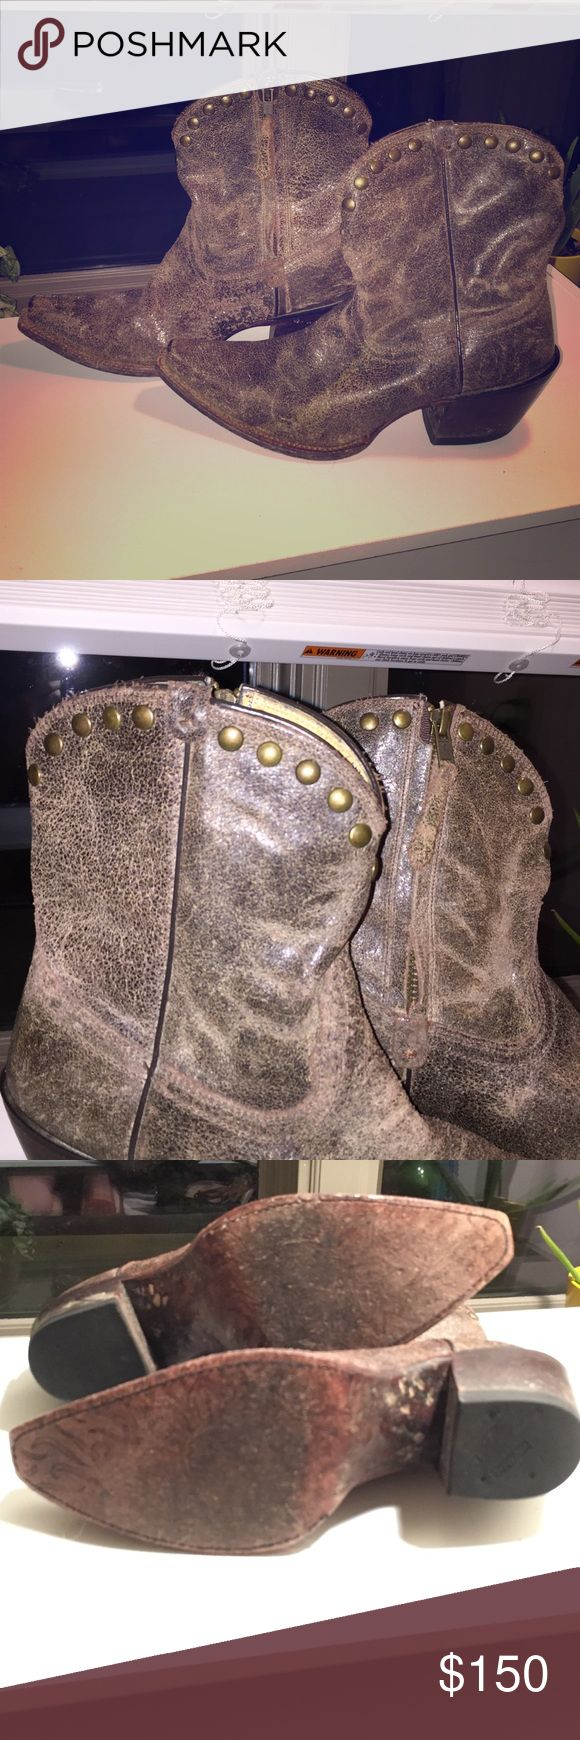 Tony Lama short cowboy boot with stud accent Authentic Tony Lama short cowboy boot. Brown distressed leather with stuff accent and inside zipper. Size 7 1/2 Pointy toe and 1 inch heel. Excellent condition. Lightly worn. 👢 Tony Lama Shoes Ankle Boots & Booties